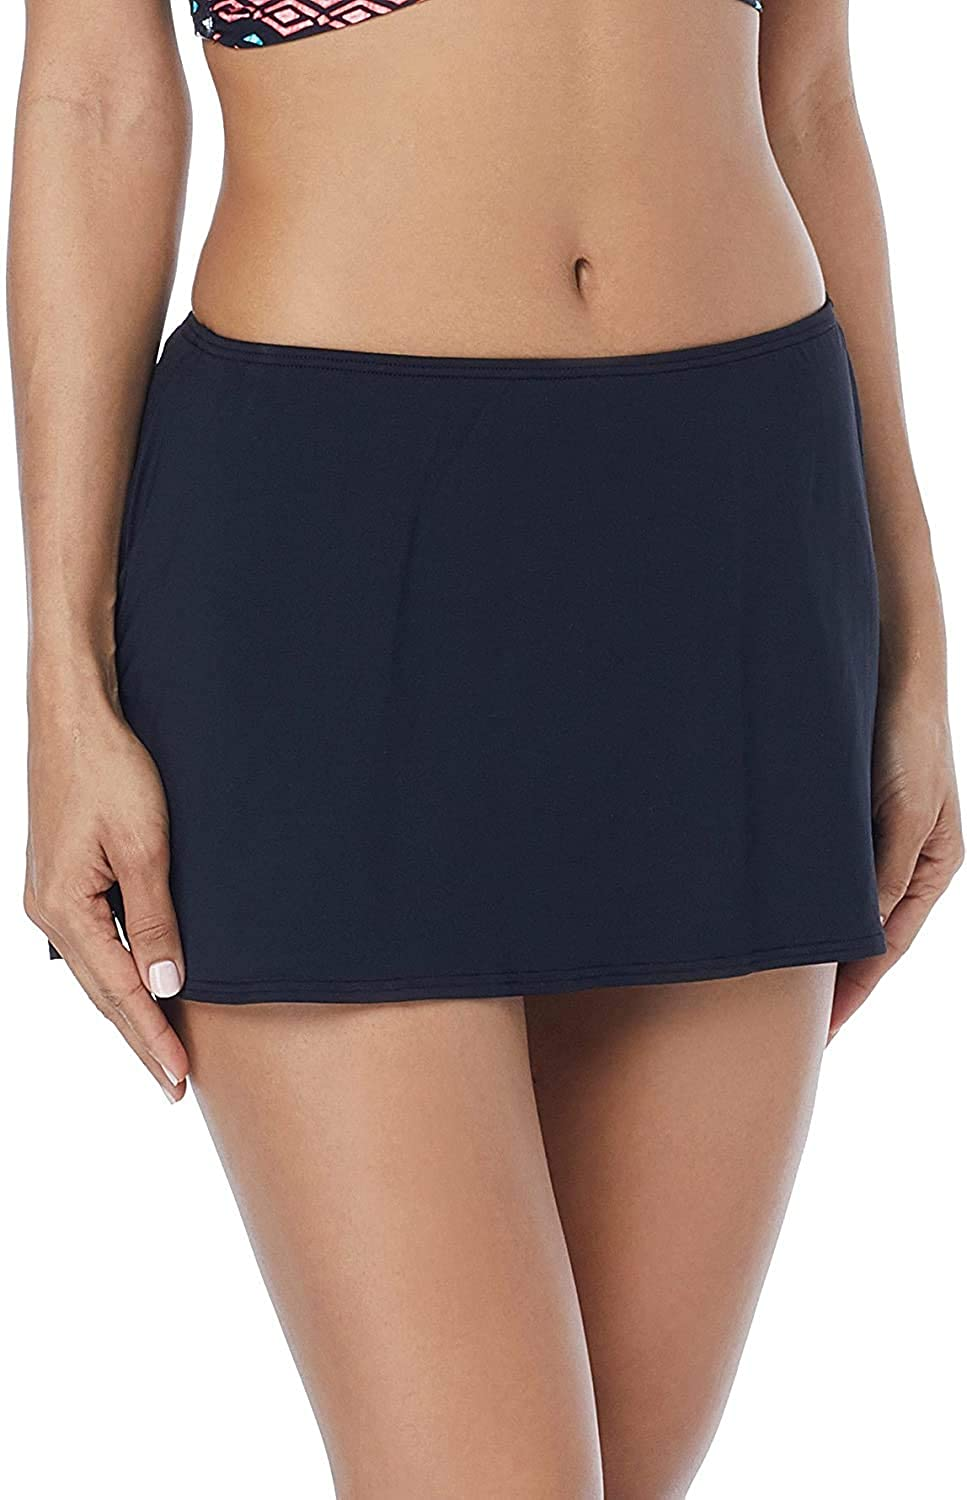 Coco Reef Skirted Swim Bottom — Flared Hem Swimsuit Skirt with Attached Bottoms